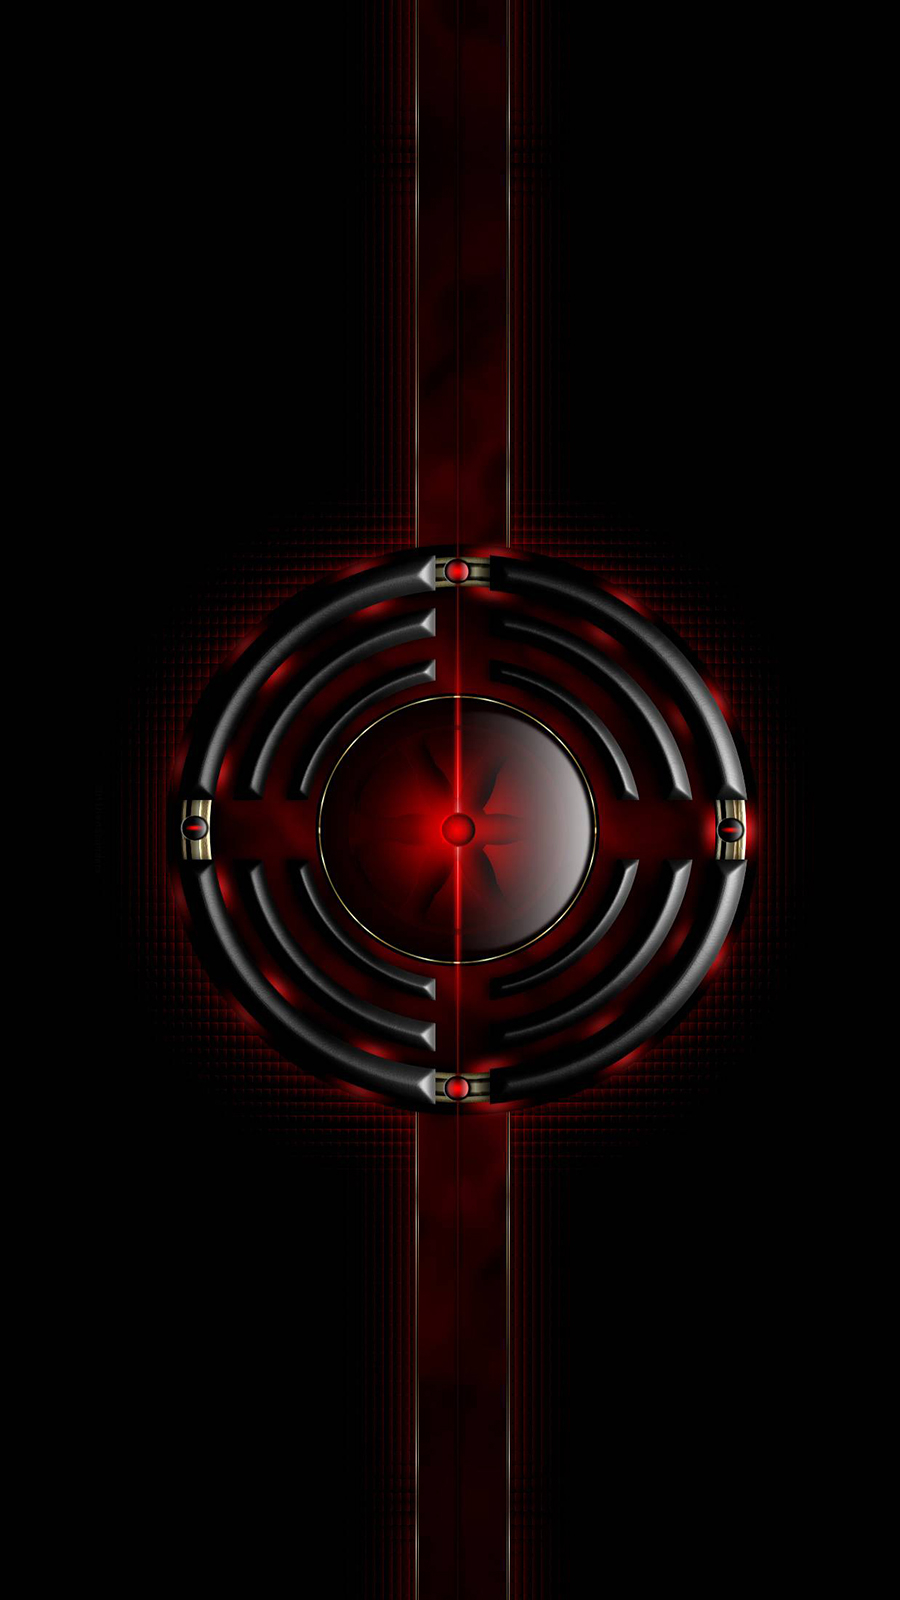 RED TARGET Wallpapers Free Download For Your Device